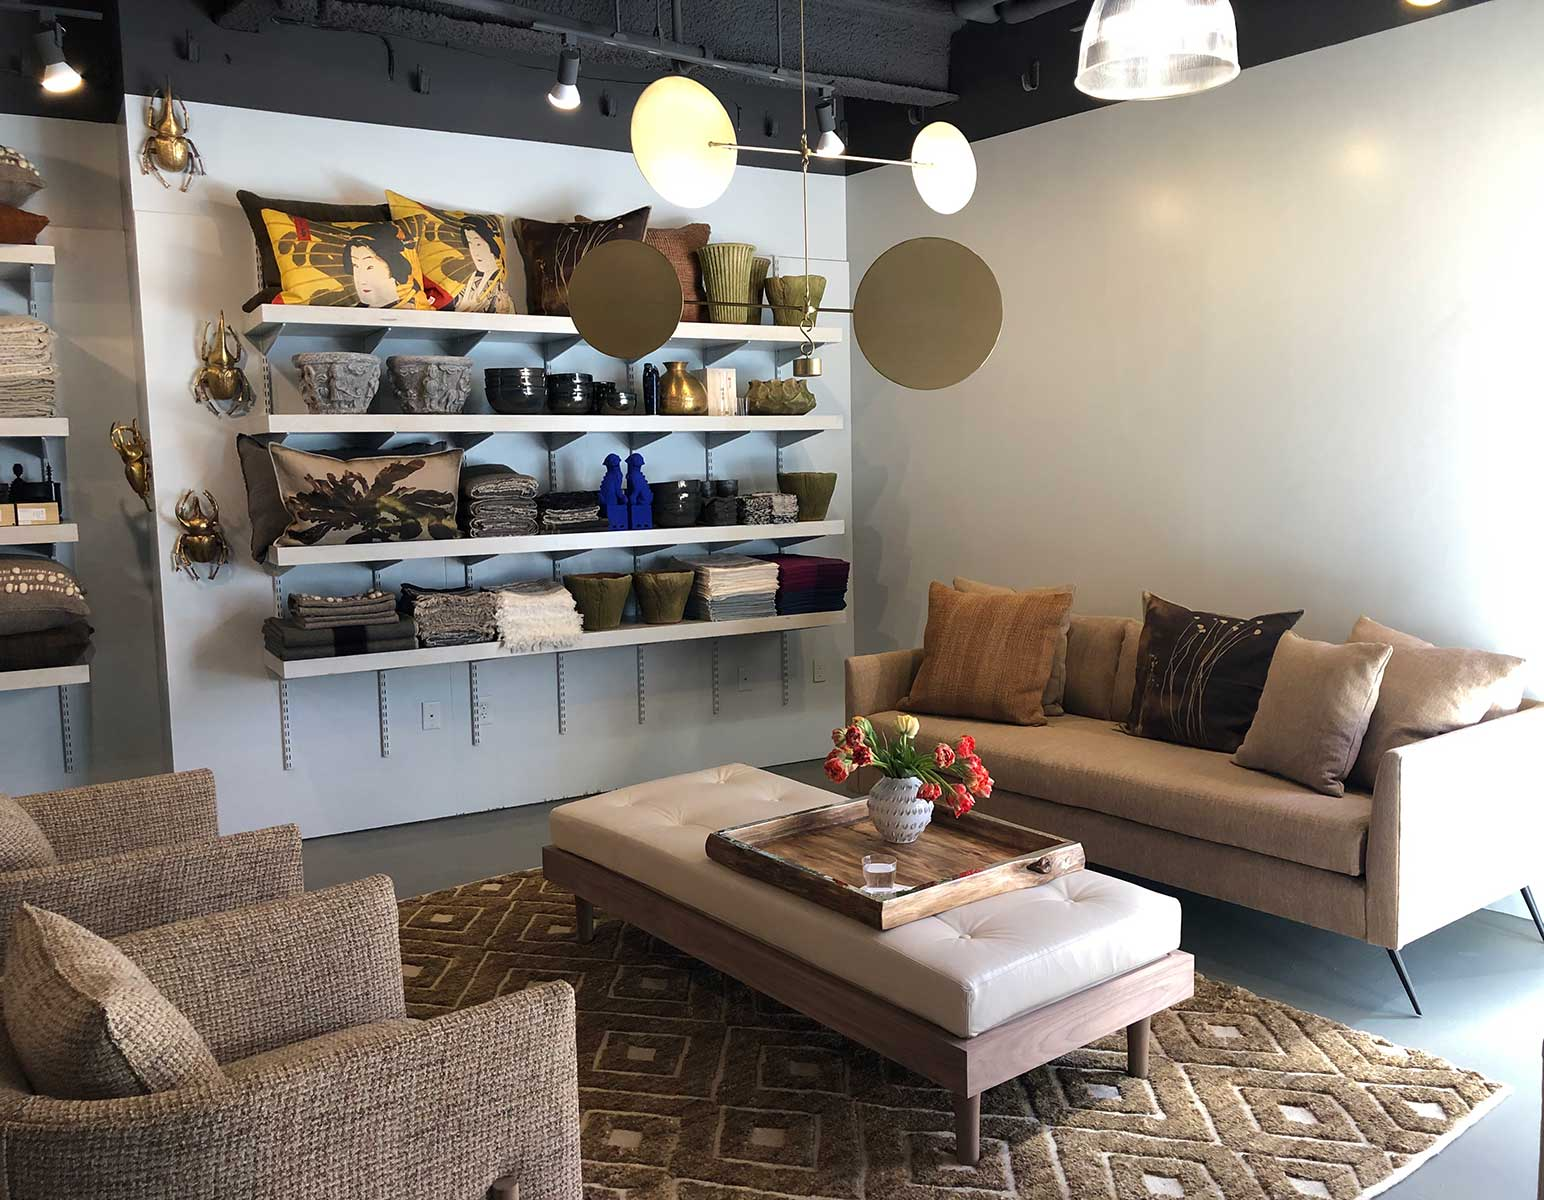 ARTEFACT's new store in Boston's South End